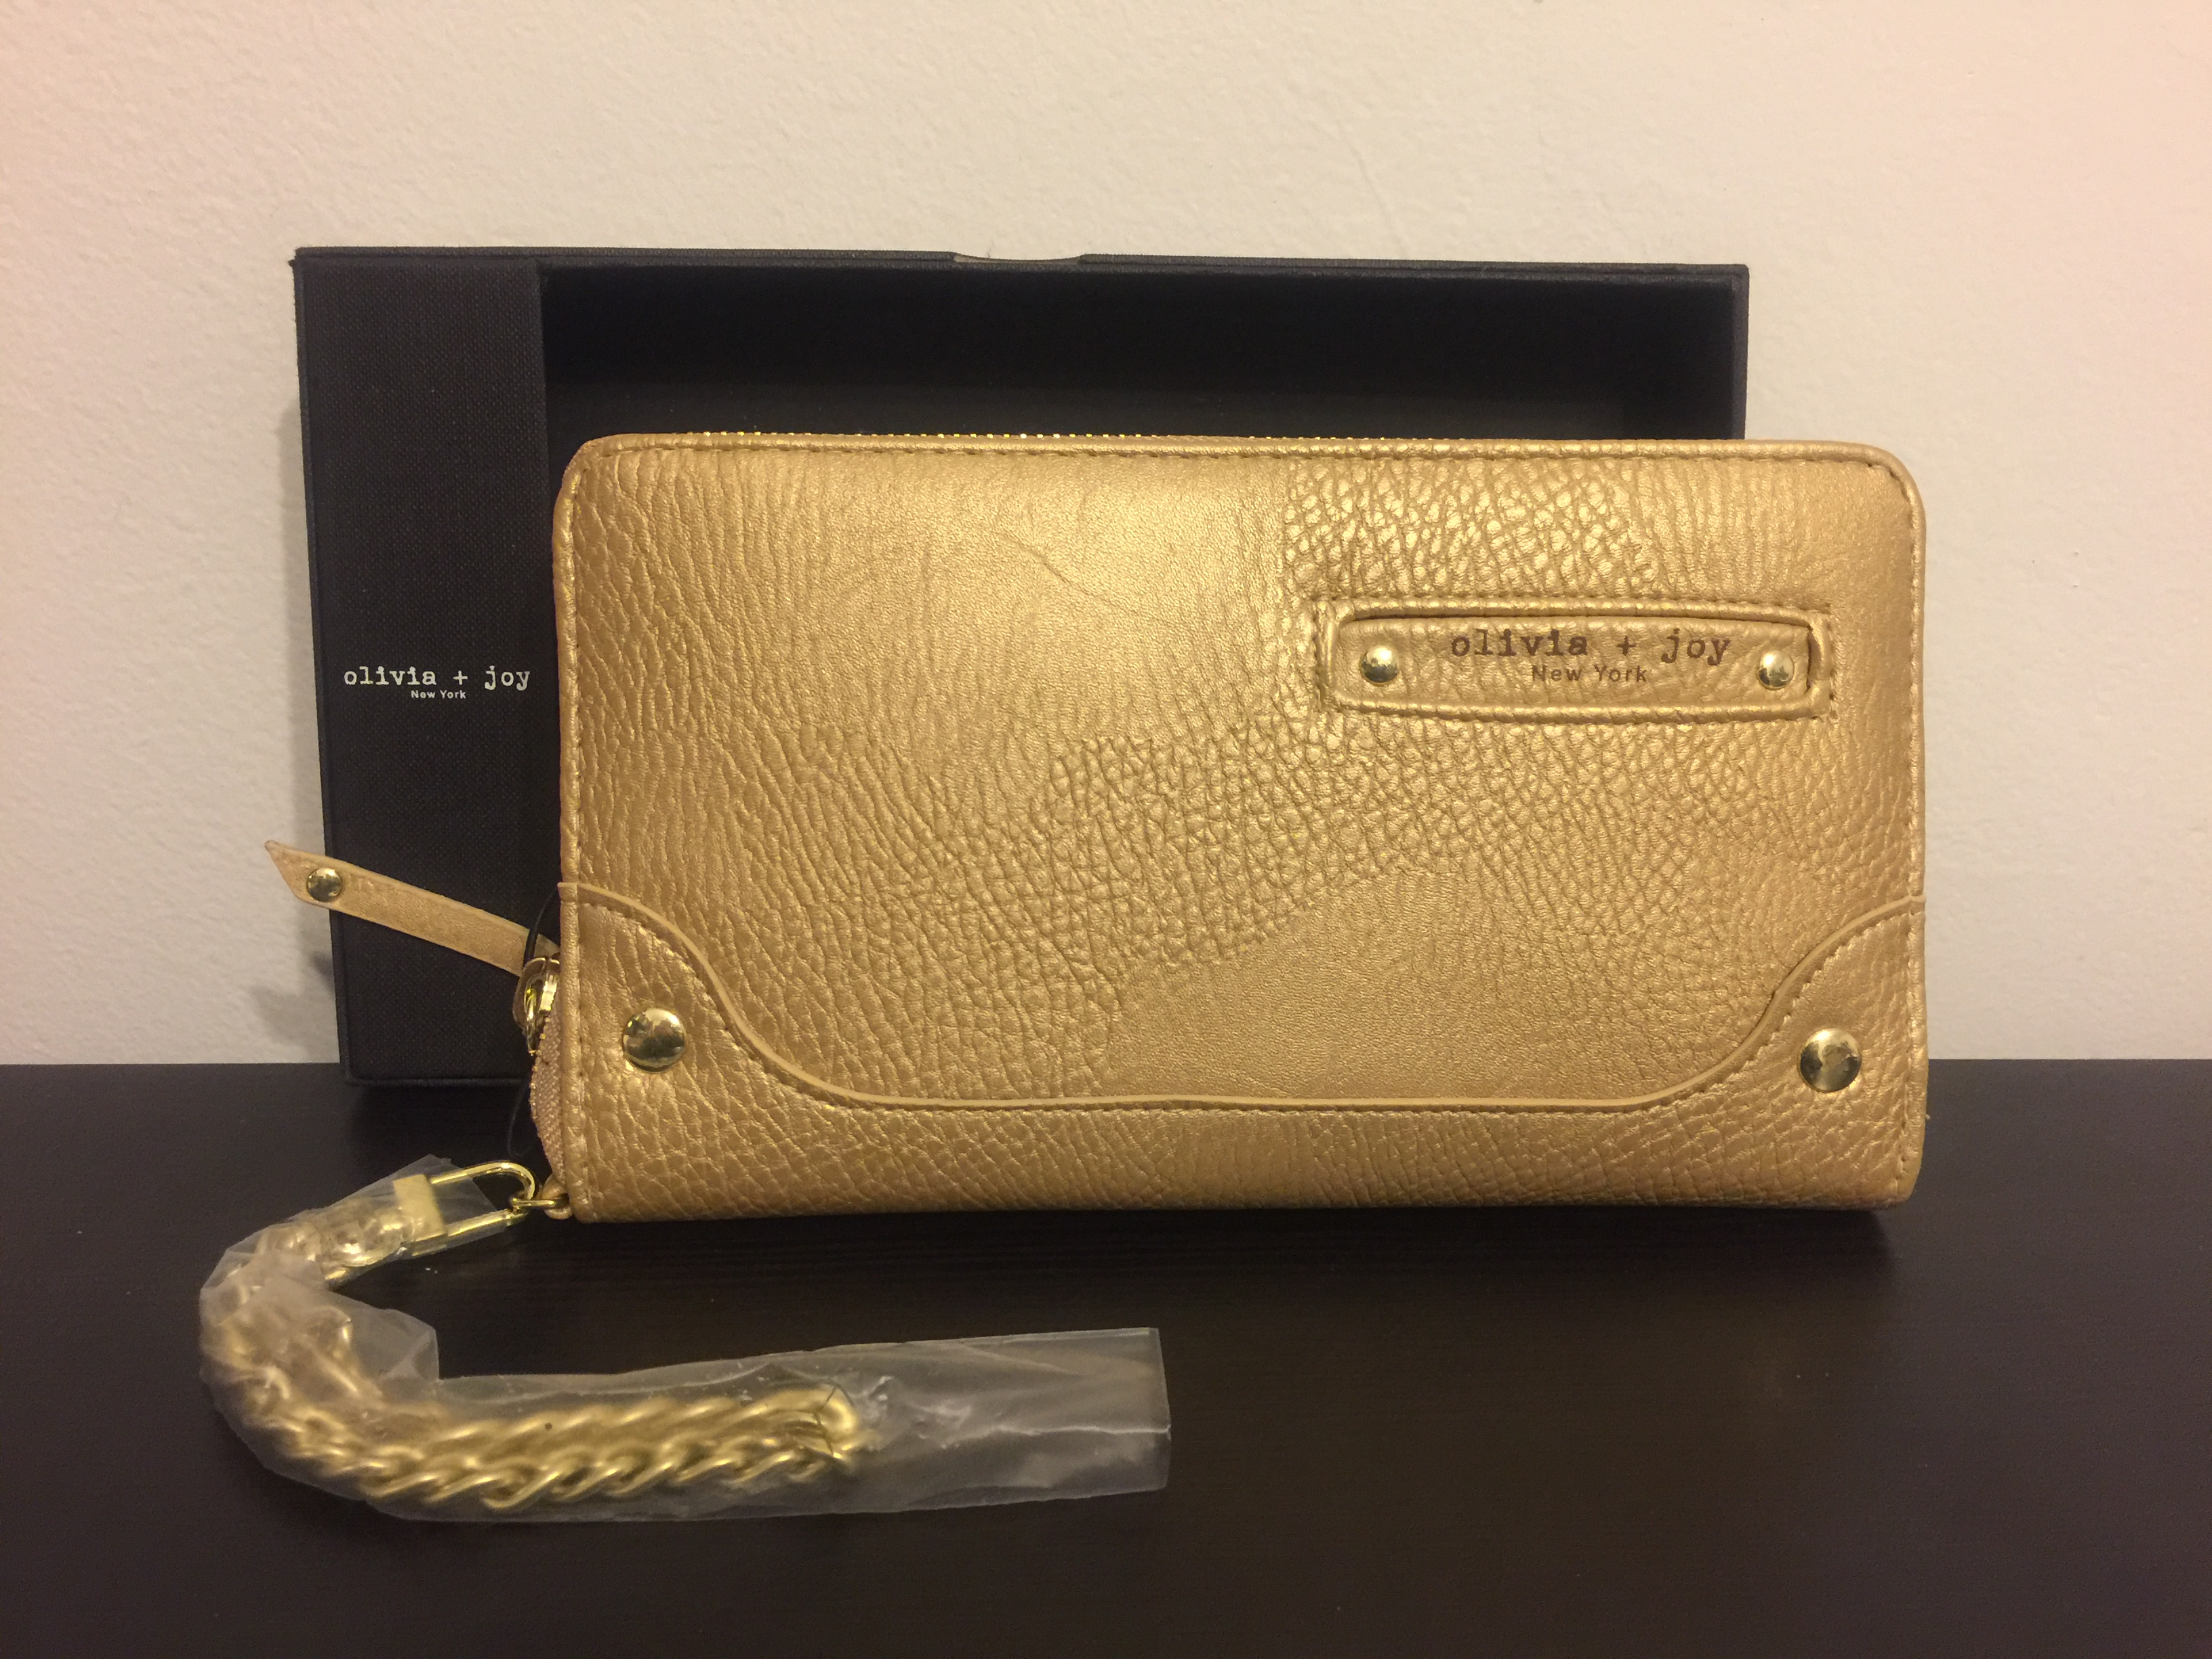 Olivia & Joy Biddy Convertible Wallet & Clutch in Gold